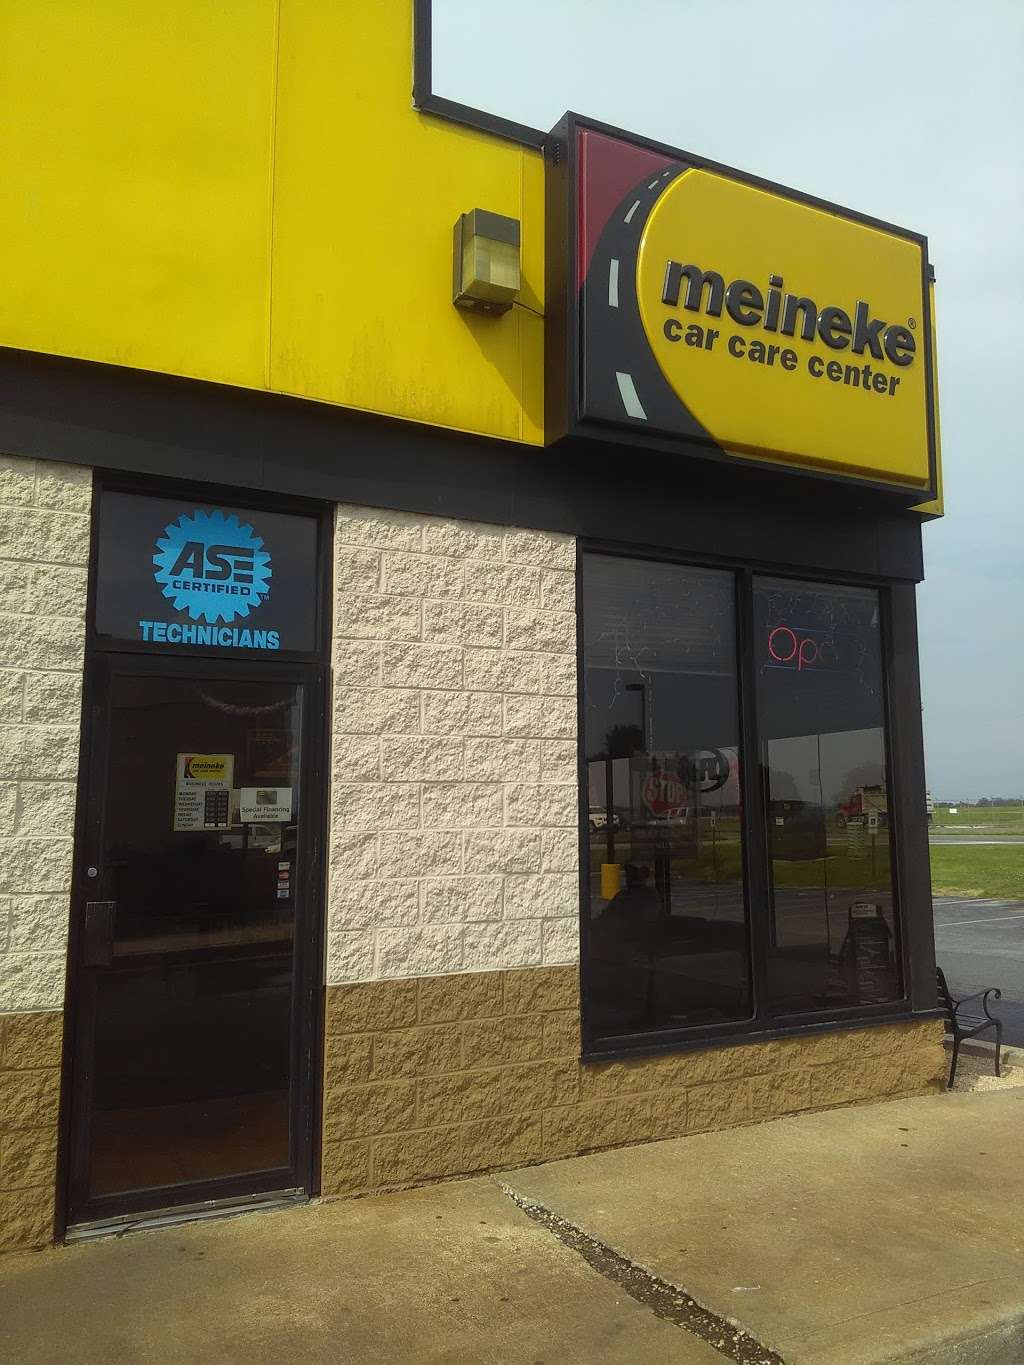 Meineke Car Care Center - car repair  | Photo 8 of 10 | Address: 120 N Dupont Hwy, New Castle, DE 19720, USA | Phone: (302) 414-0450